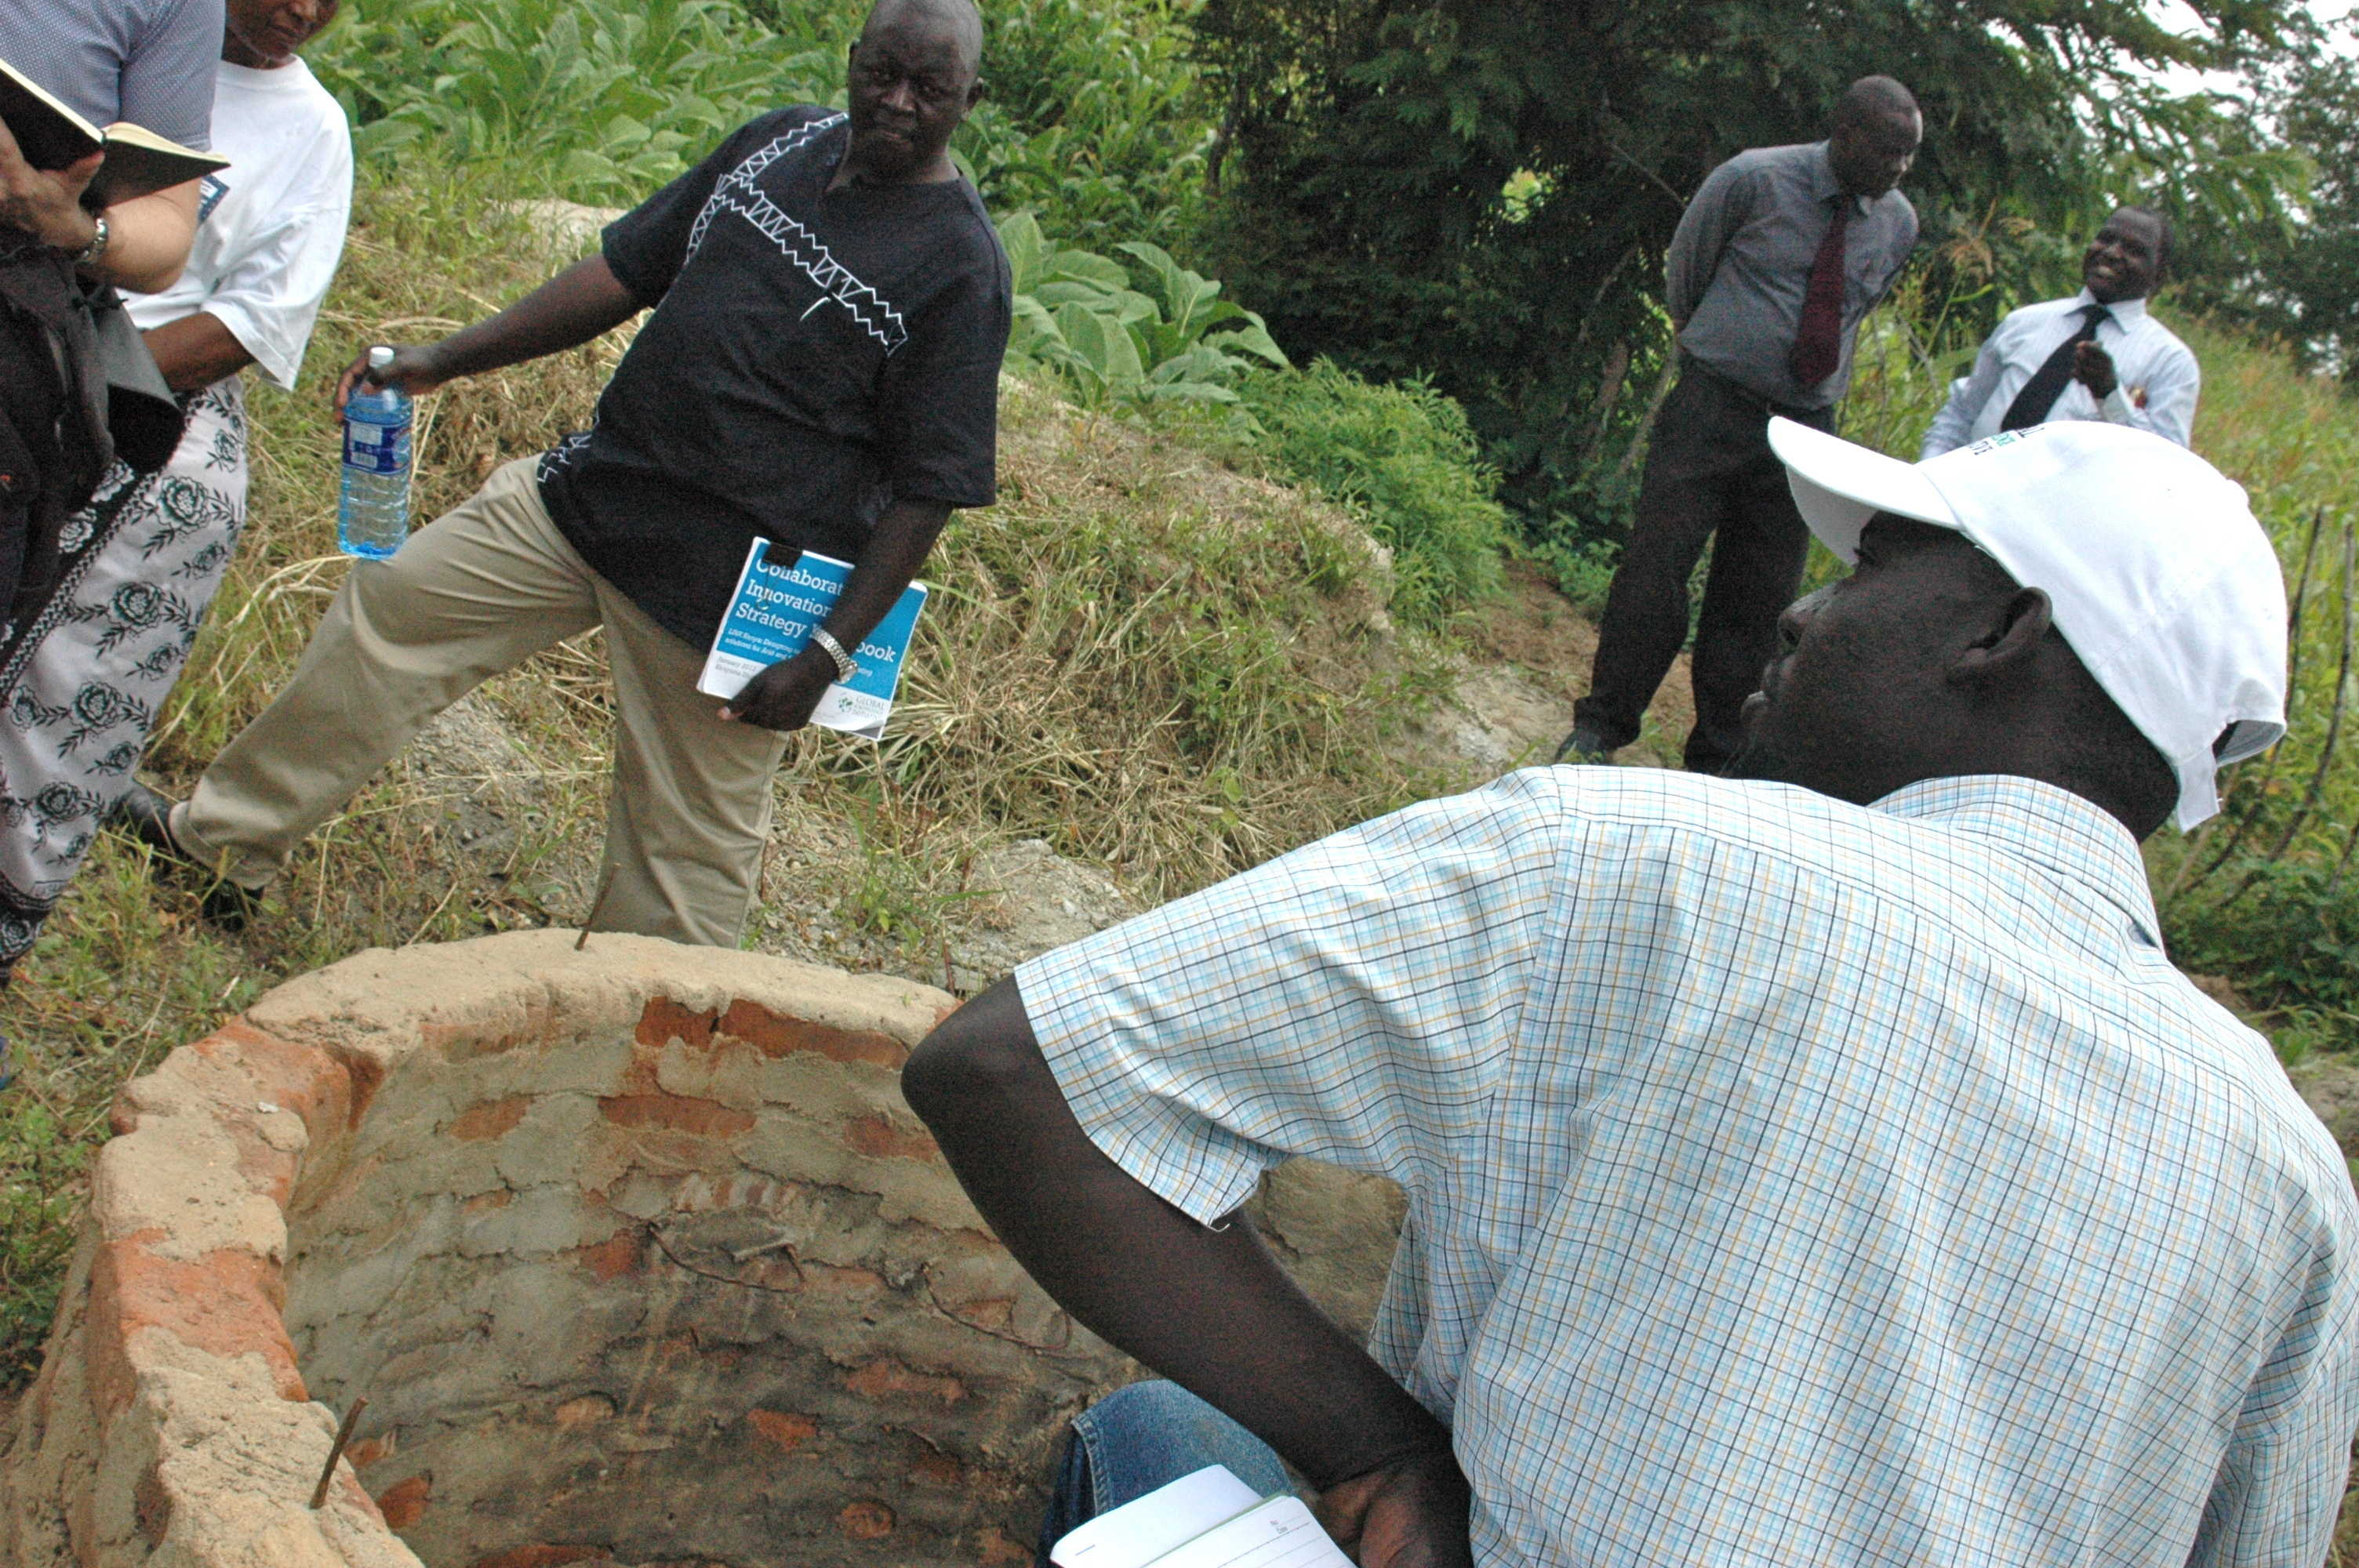 Round III of LINK focuses on rainwater harvesting technologies - like this well - in Kenya